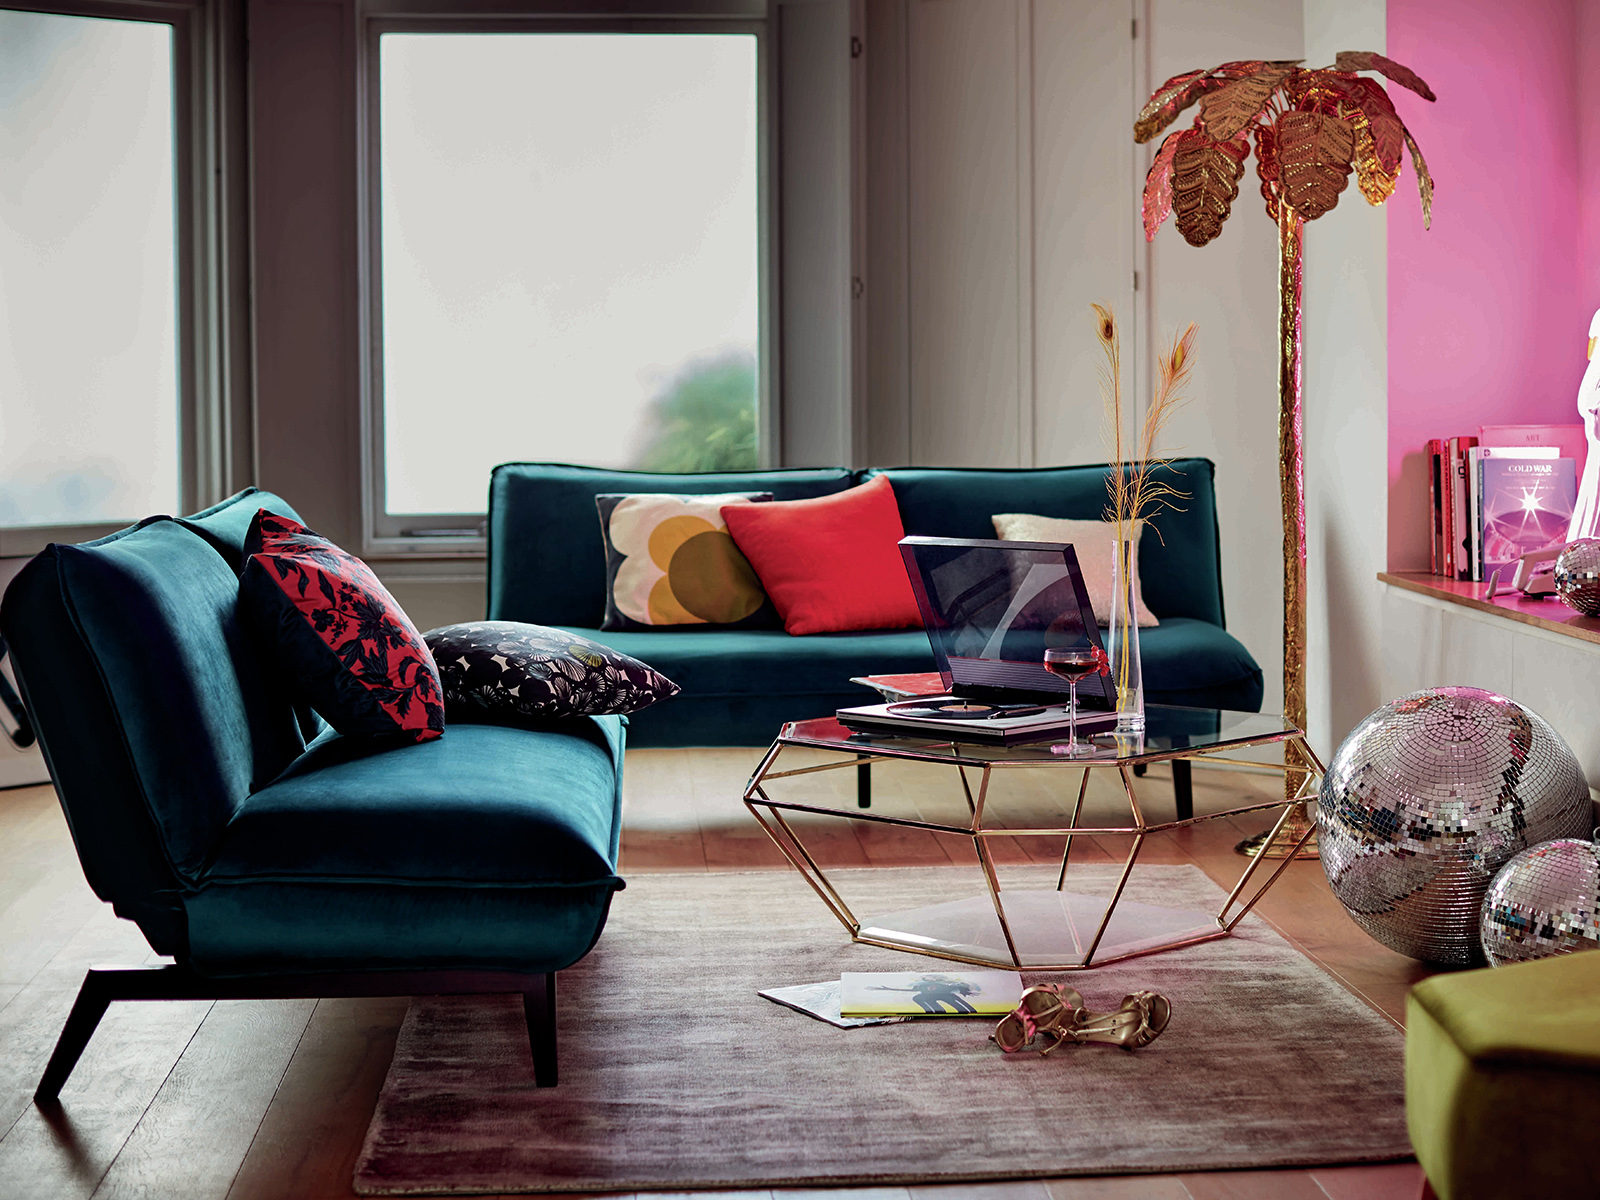 Savina Sofabed in teal velvet by DFS is totally on trend as reported by designer and colour expert Sophie Robinson